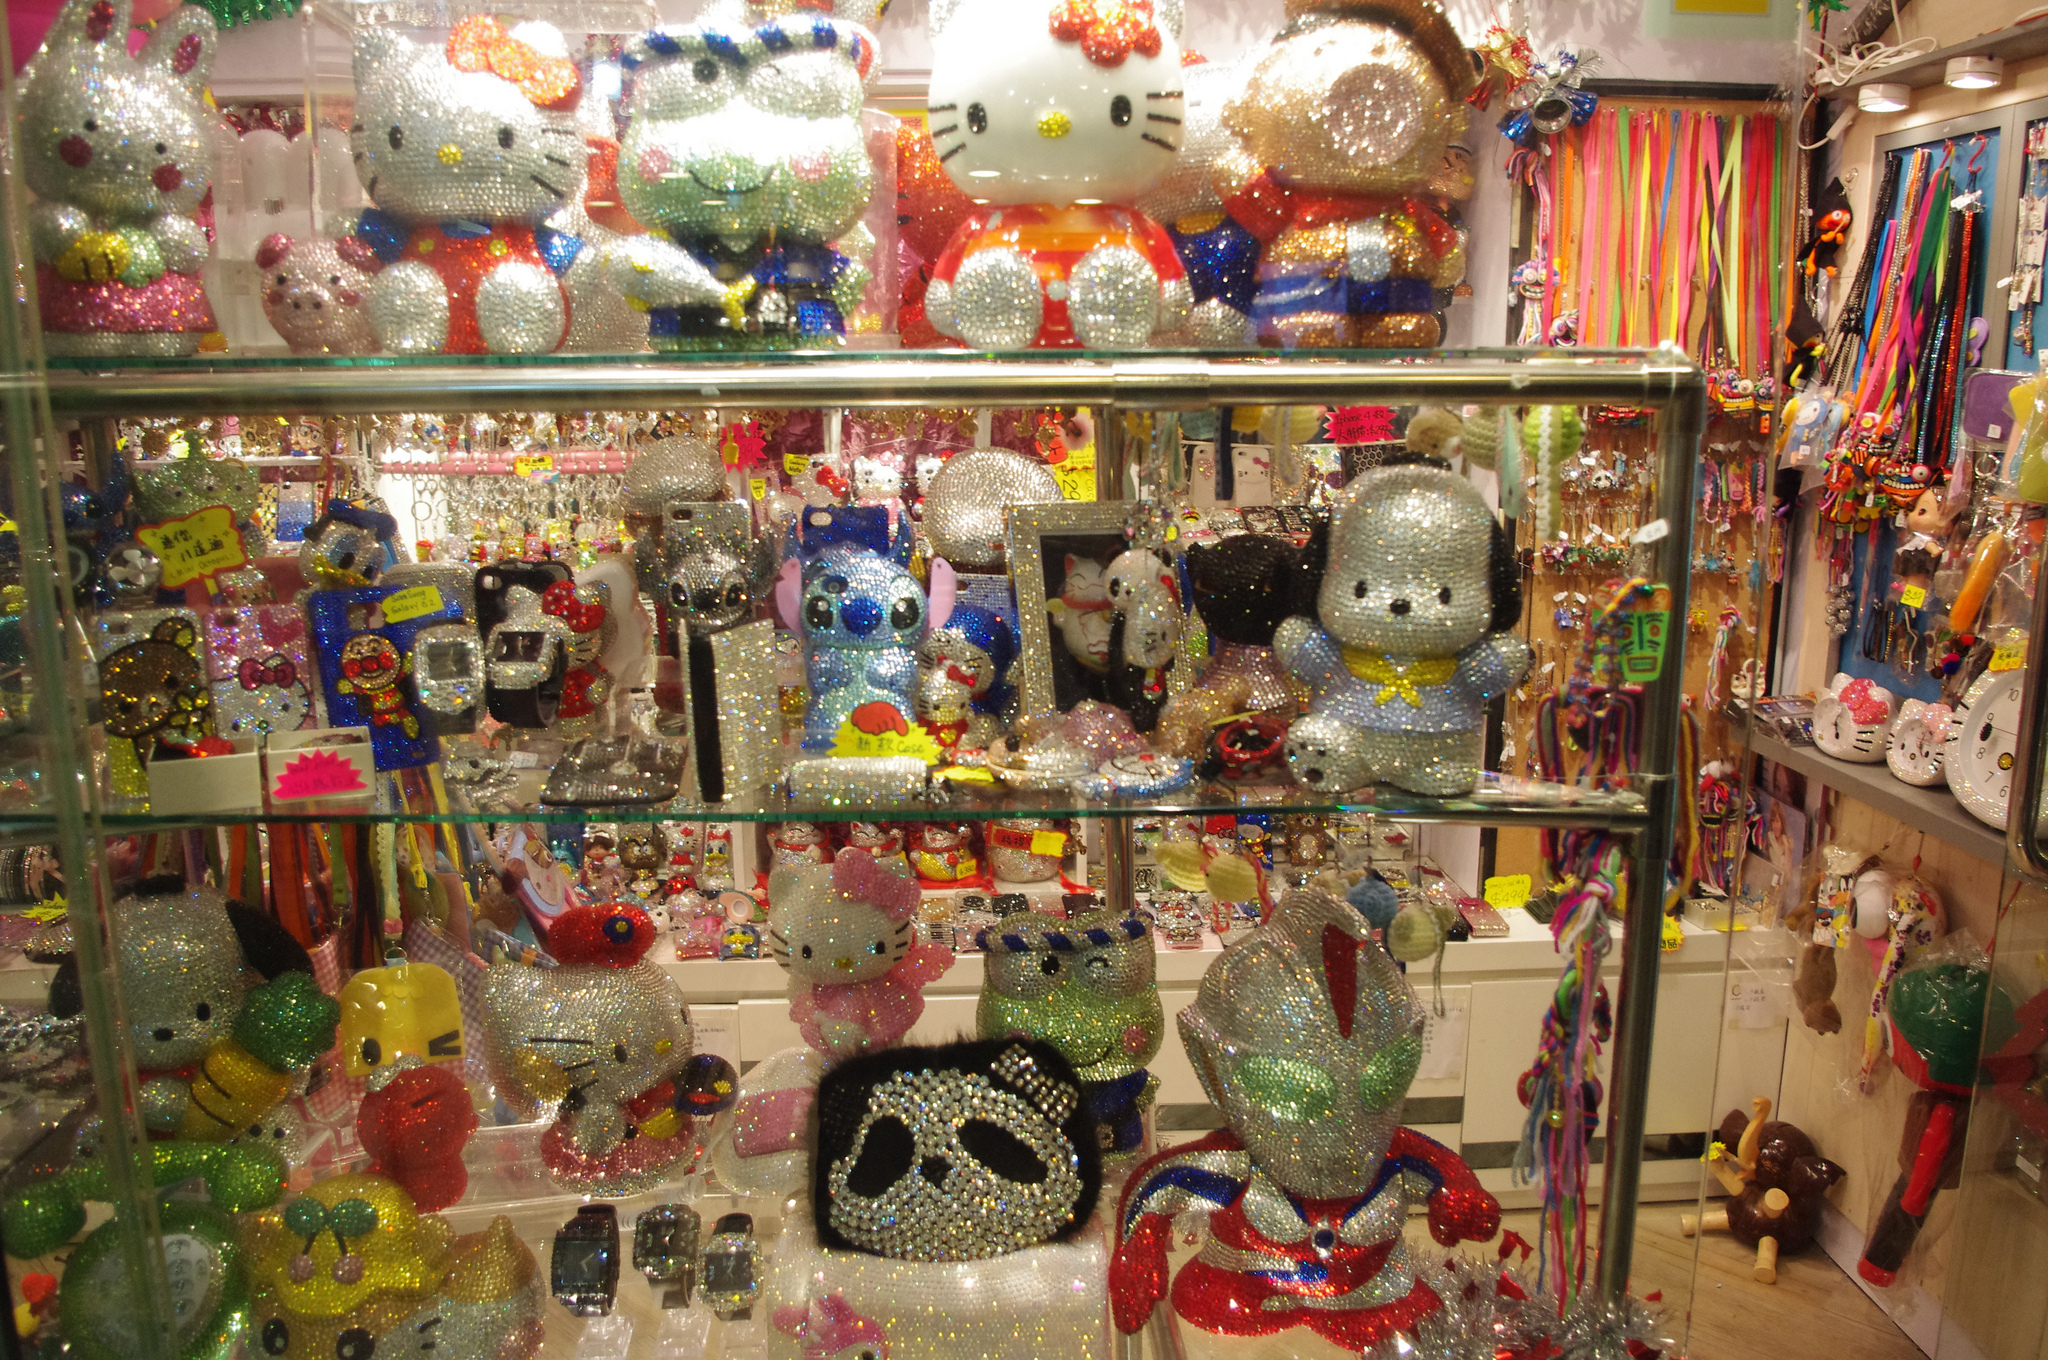 Character toys at the Trendy Zone in Hong Kong. Photo by alphacityguides.